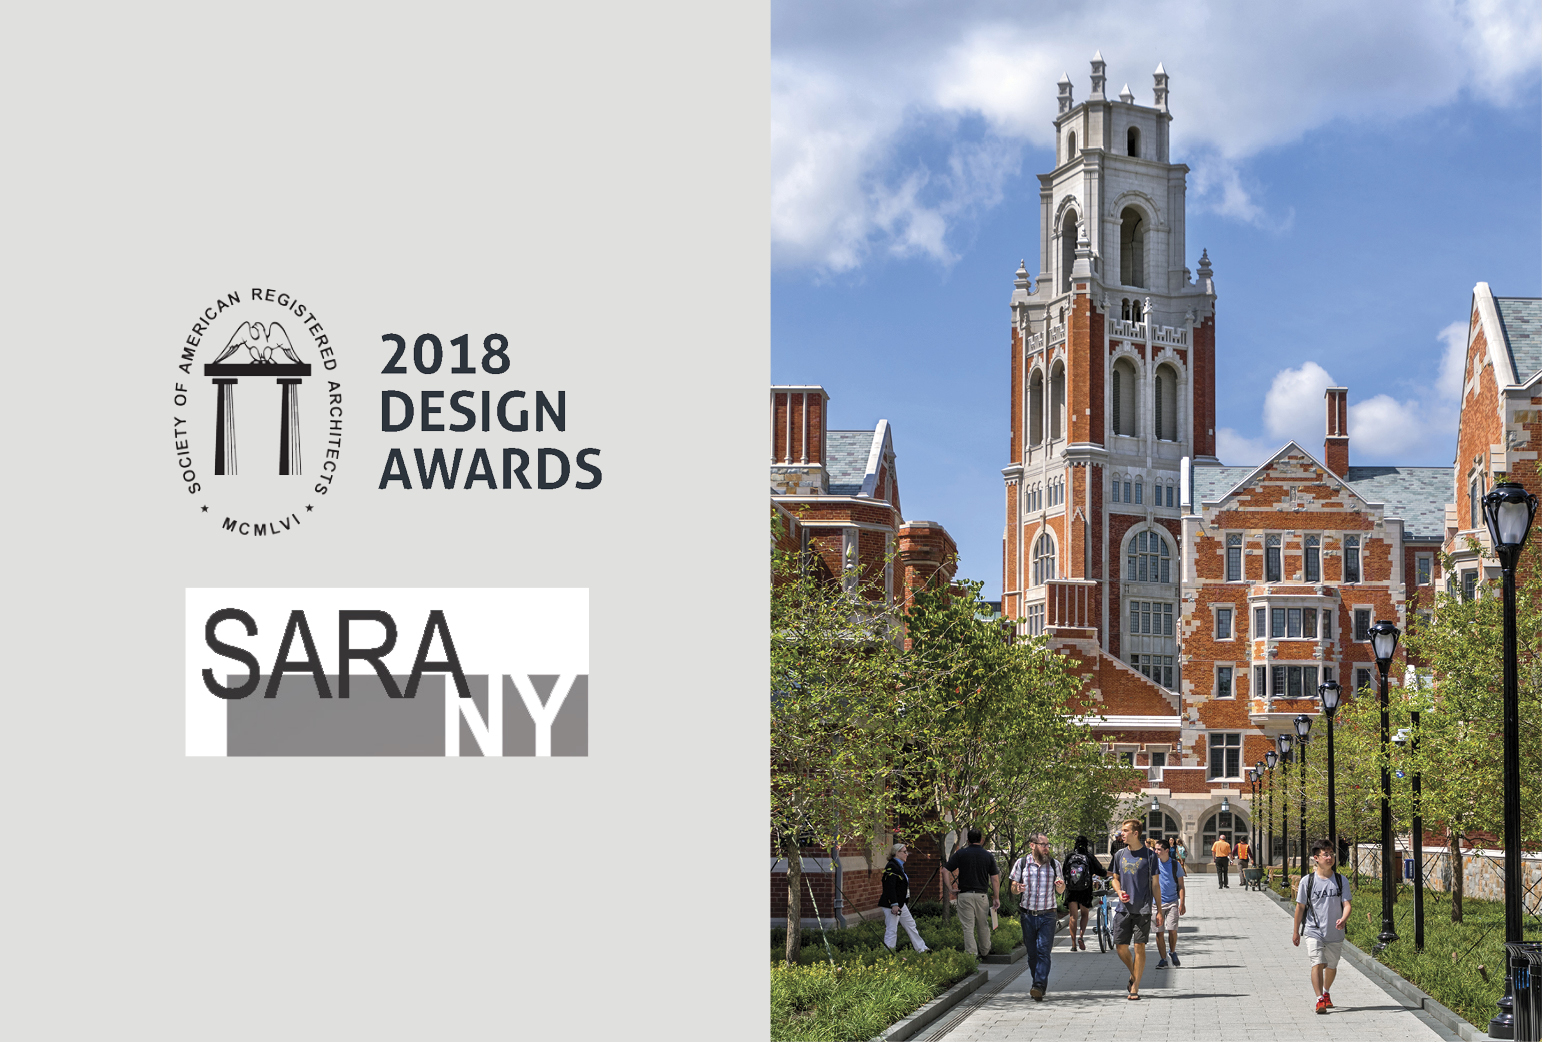 Yale Residential Colleges Win 2018 SARA NY Design Award of Honor